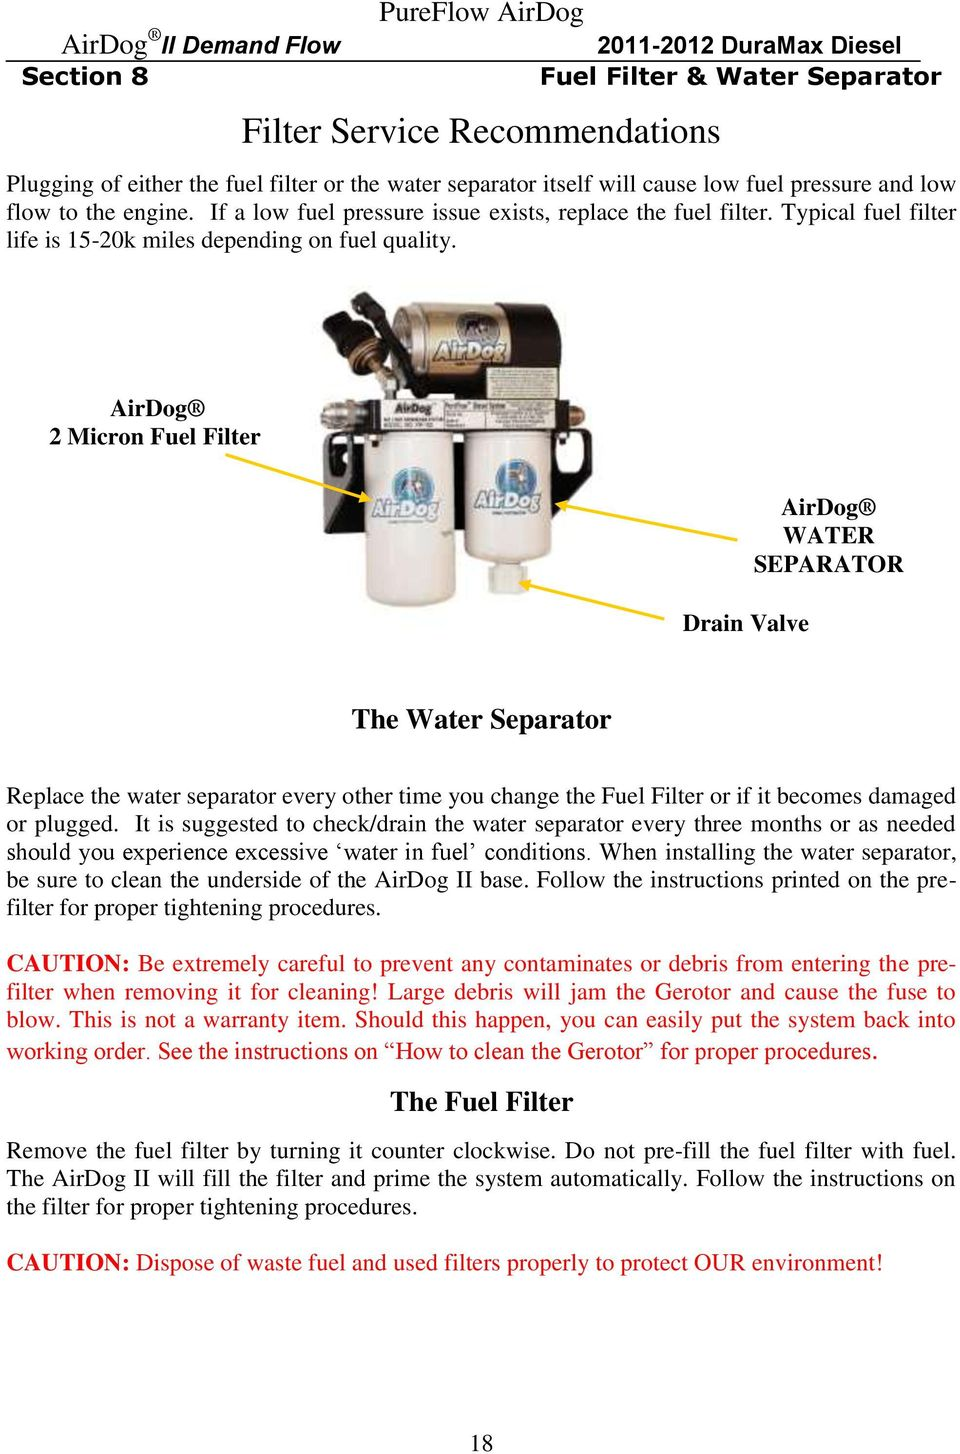 Duramax Diesel Powered Chevy Gmc Trucks 2011 And Up Pdf Airdog Fuel Filters 2 Micron Filter Drain Valve Water Separator The Replace